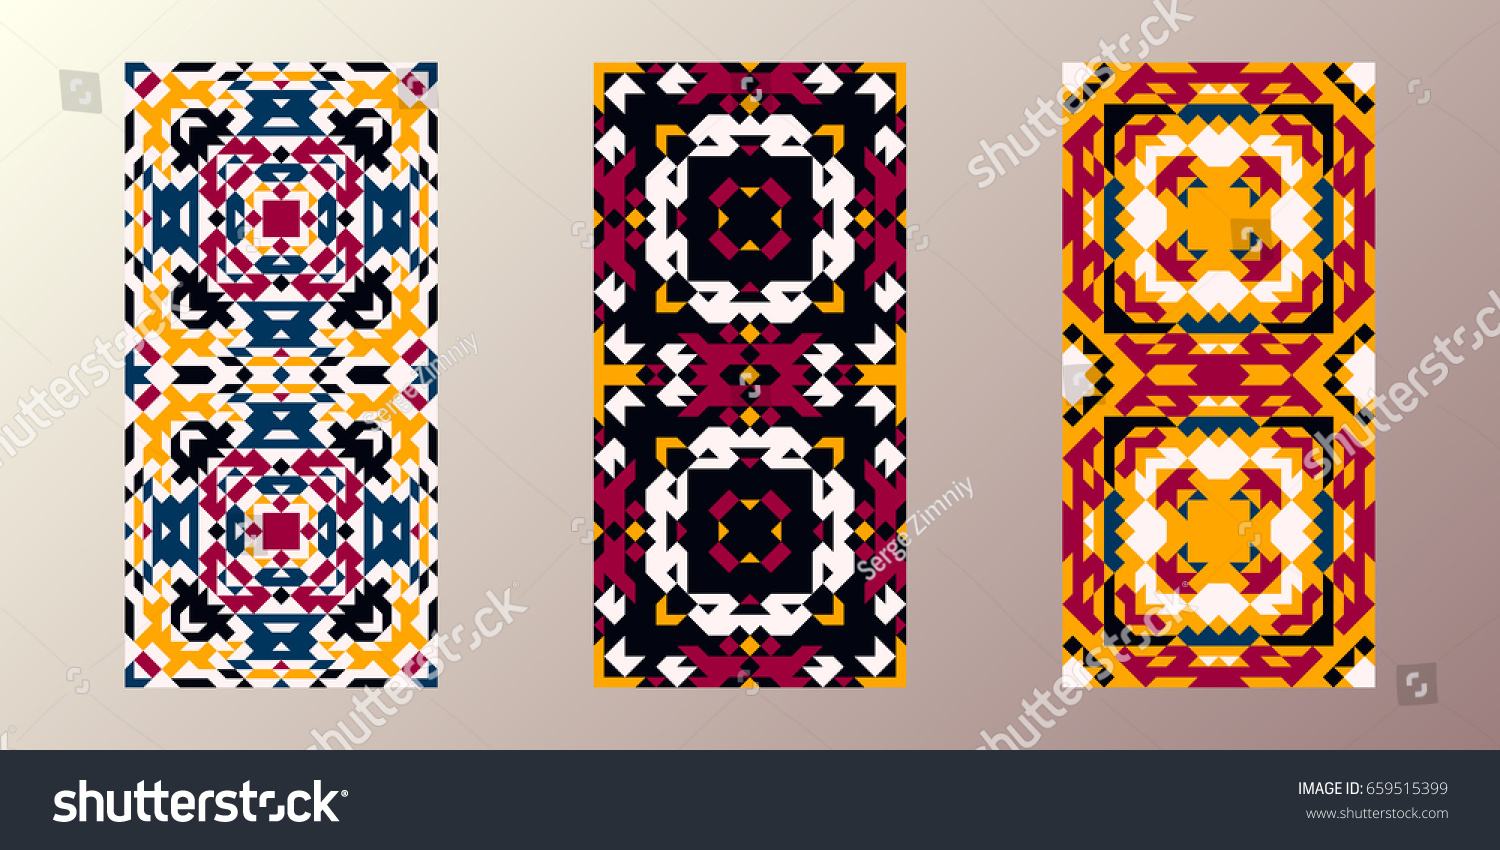 3 Seamless Patterns Navajo Triangular Style Stock Vector (2018 ...